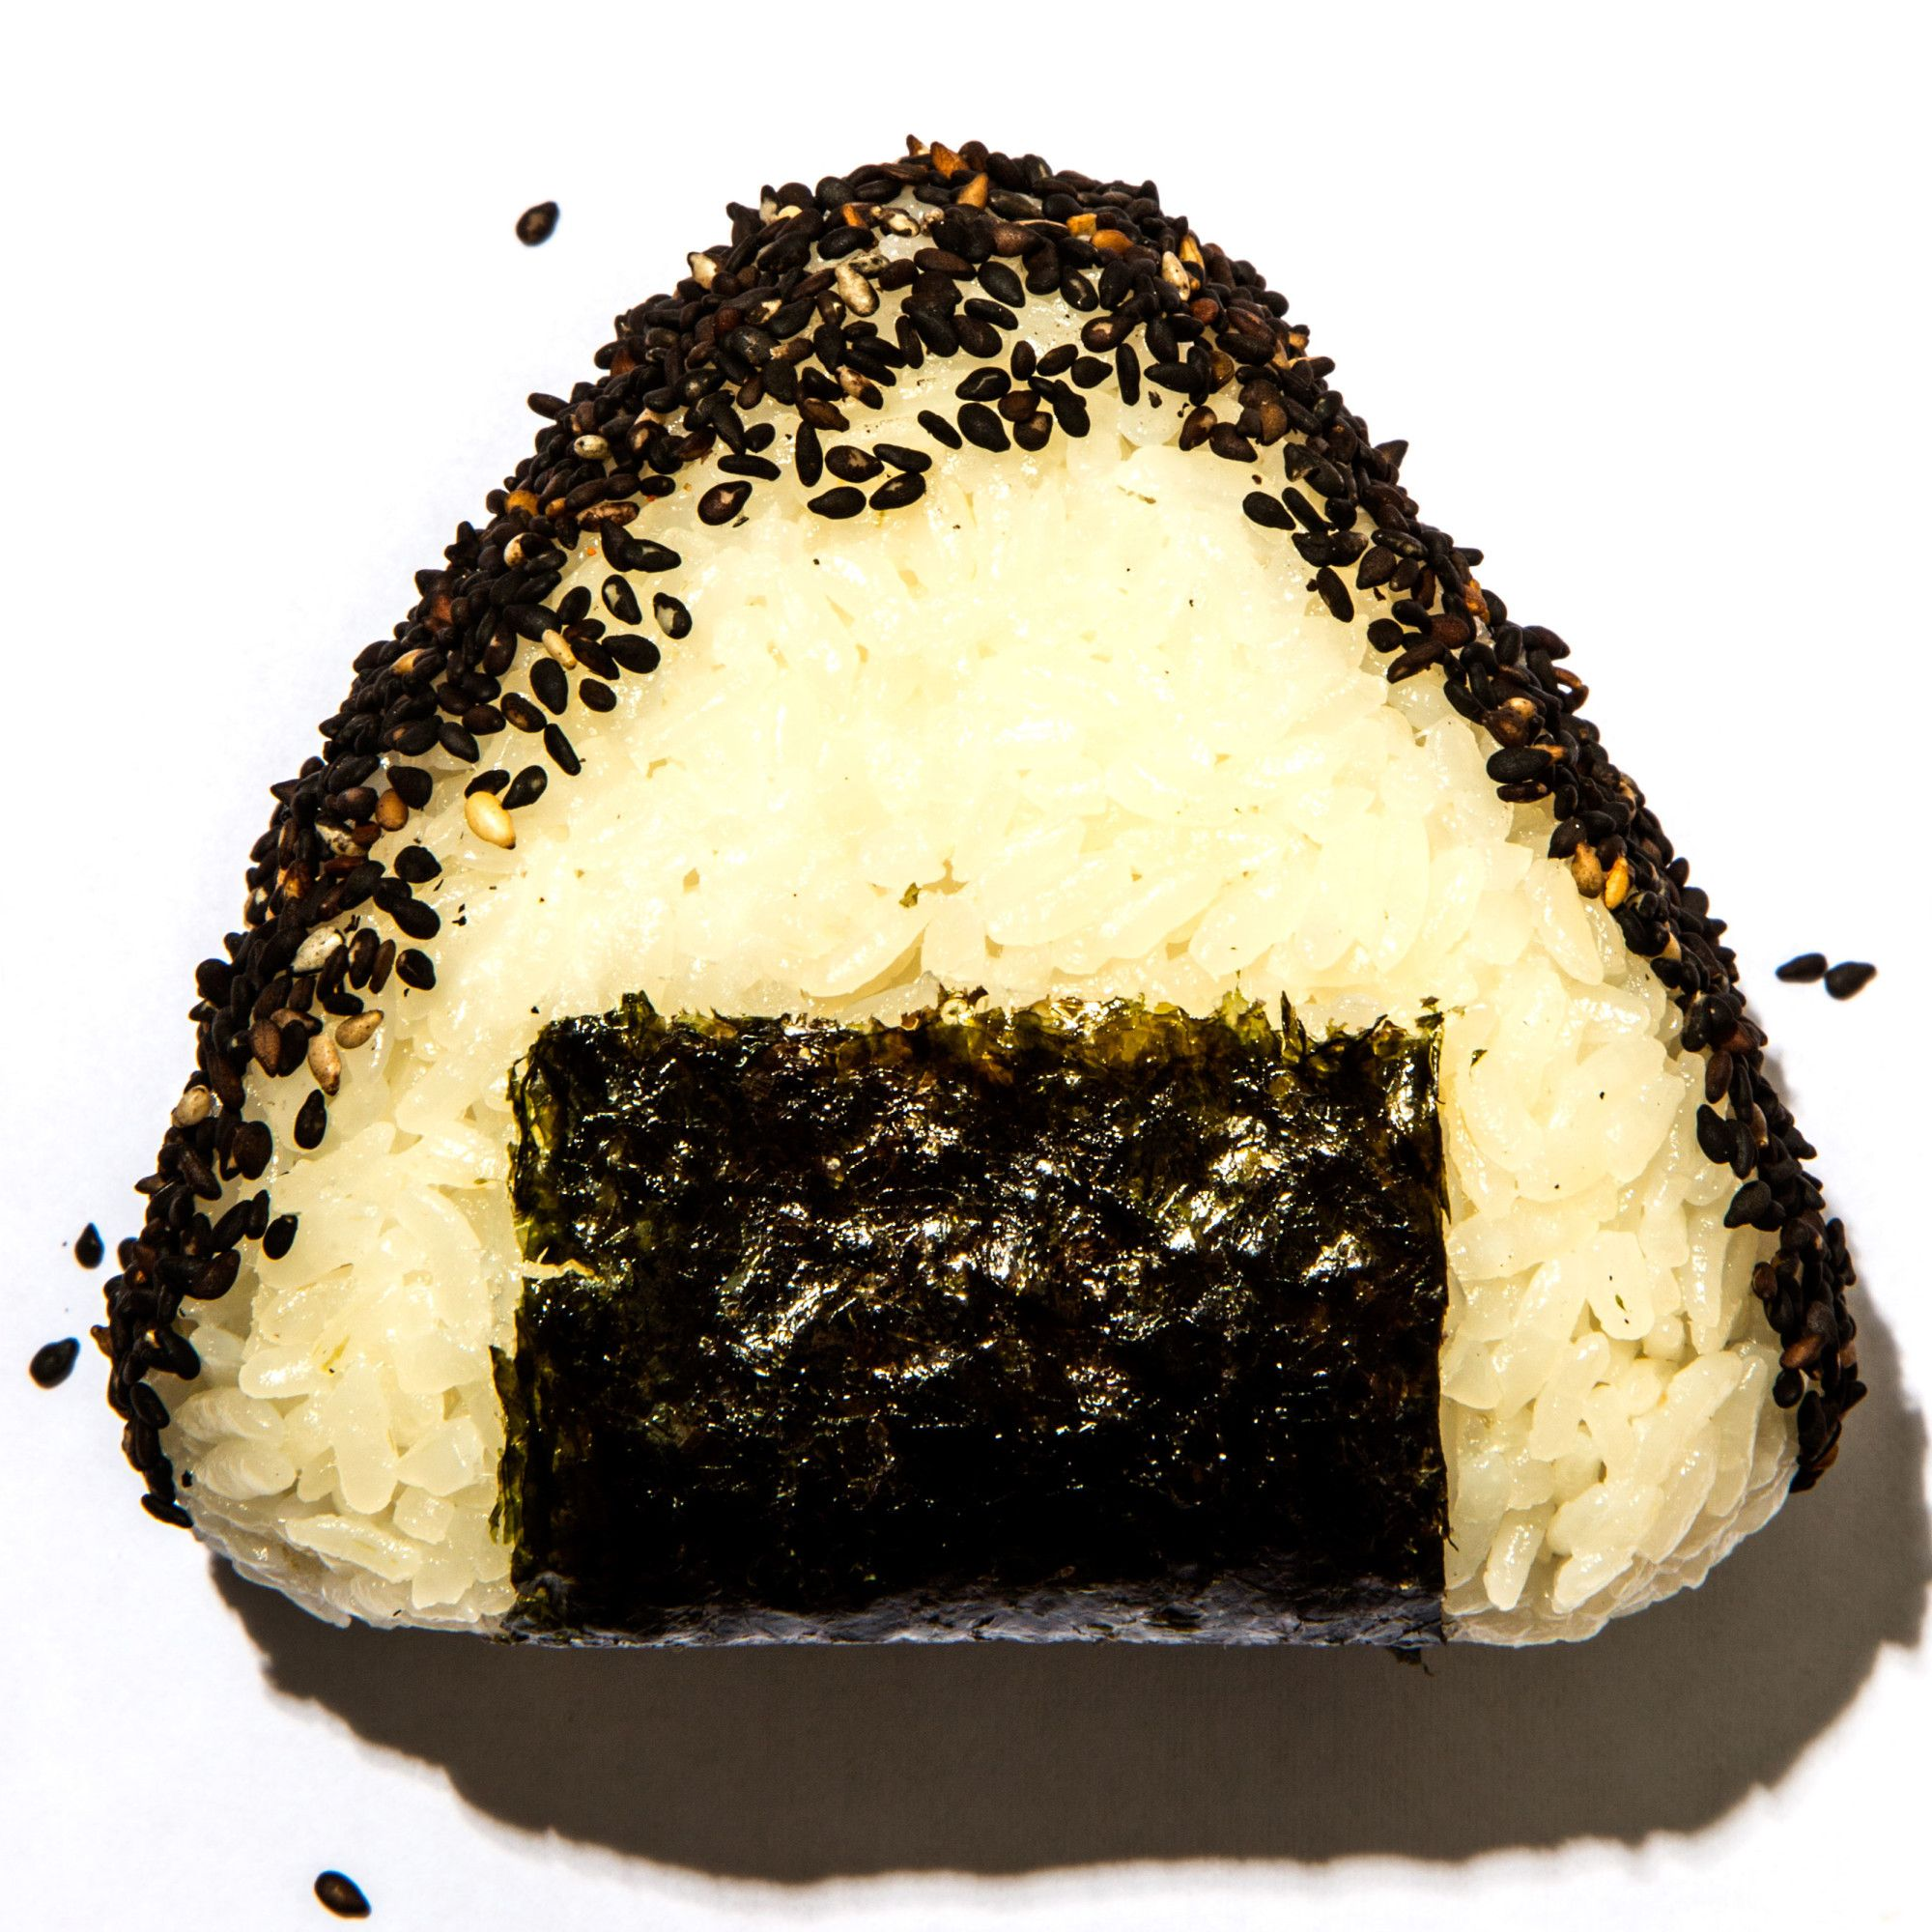 Onigiri: Make sure to rinse the rice in several changes of water before cooking so that it isn't too gluey.